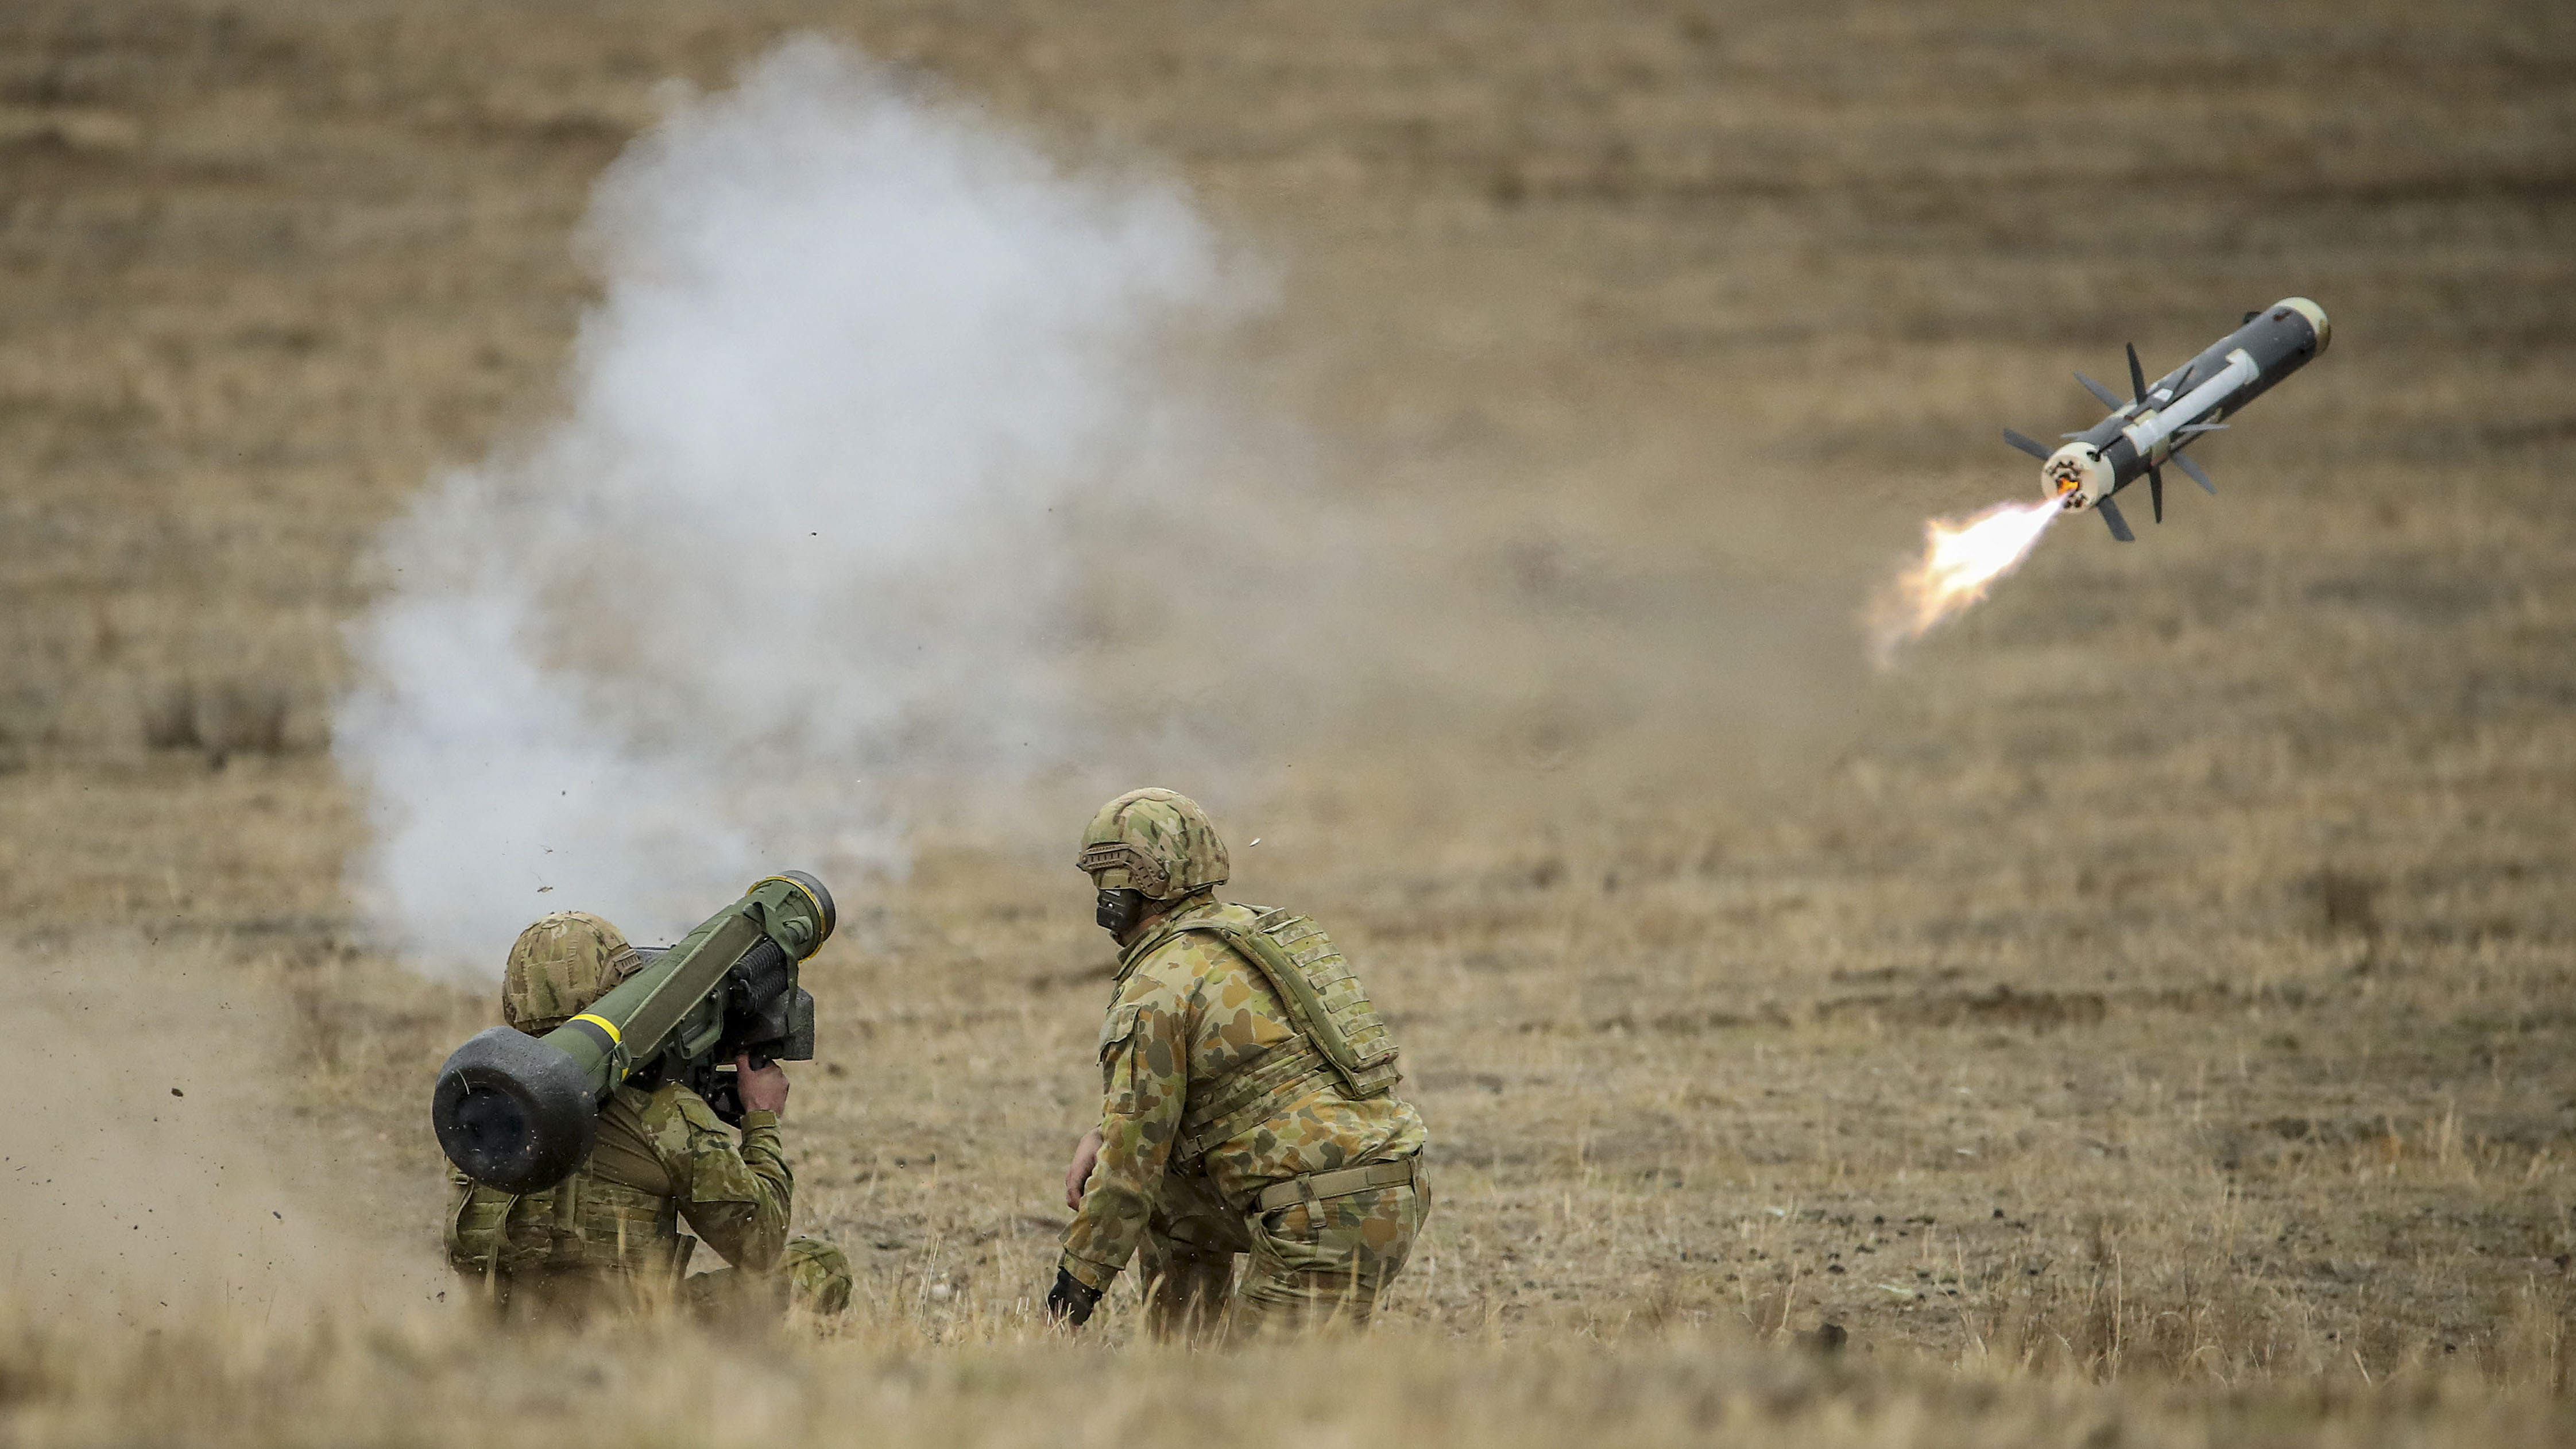 Australian Army soldiers fire a Javelin anti-tank missile during Exercise Chong Ju at the Puckapunyal Military Area on May 09, 2019 in Seymour, Australia. (Photo by Scott Barbour/Getty Images)